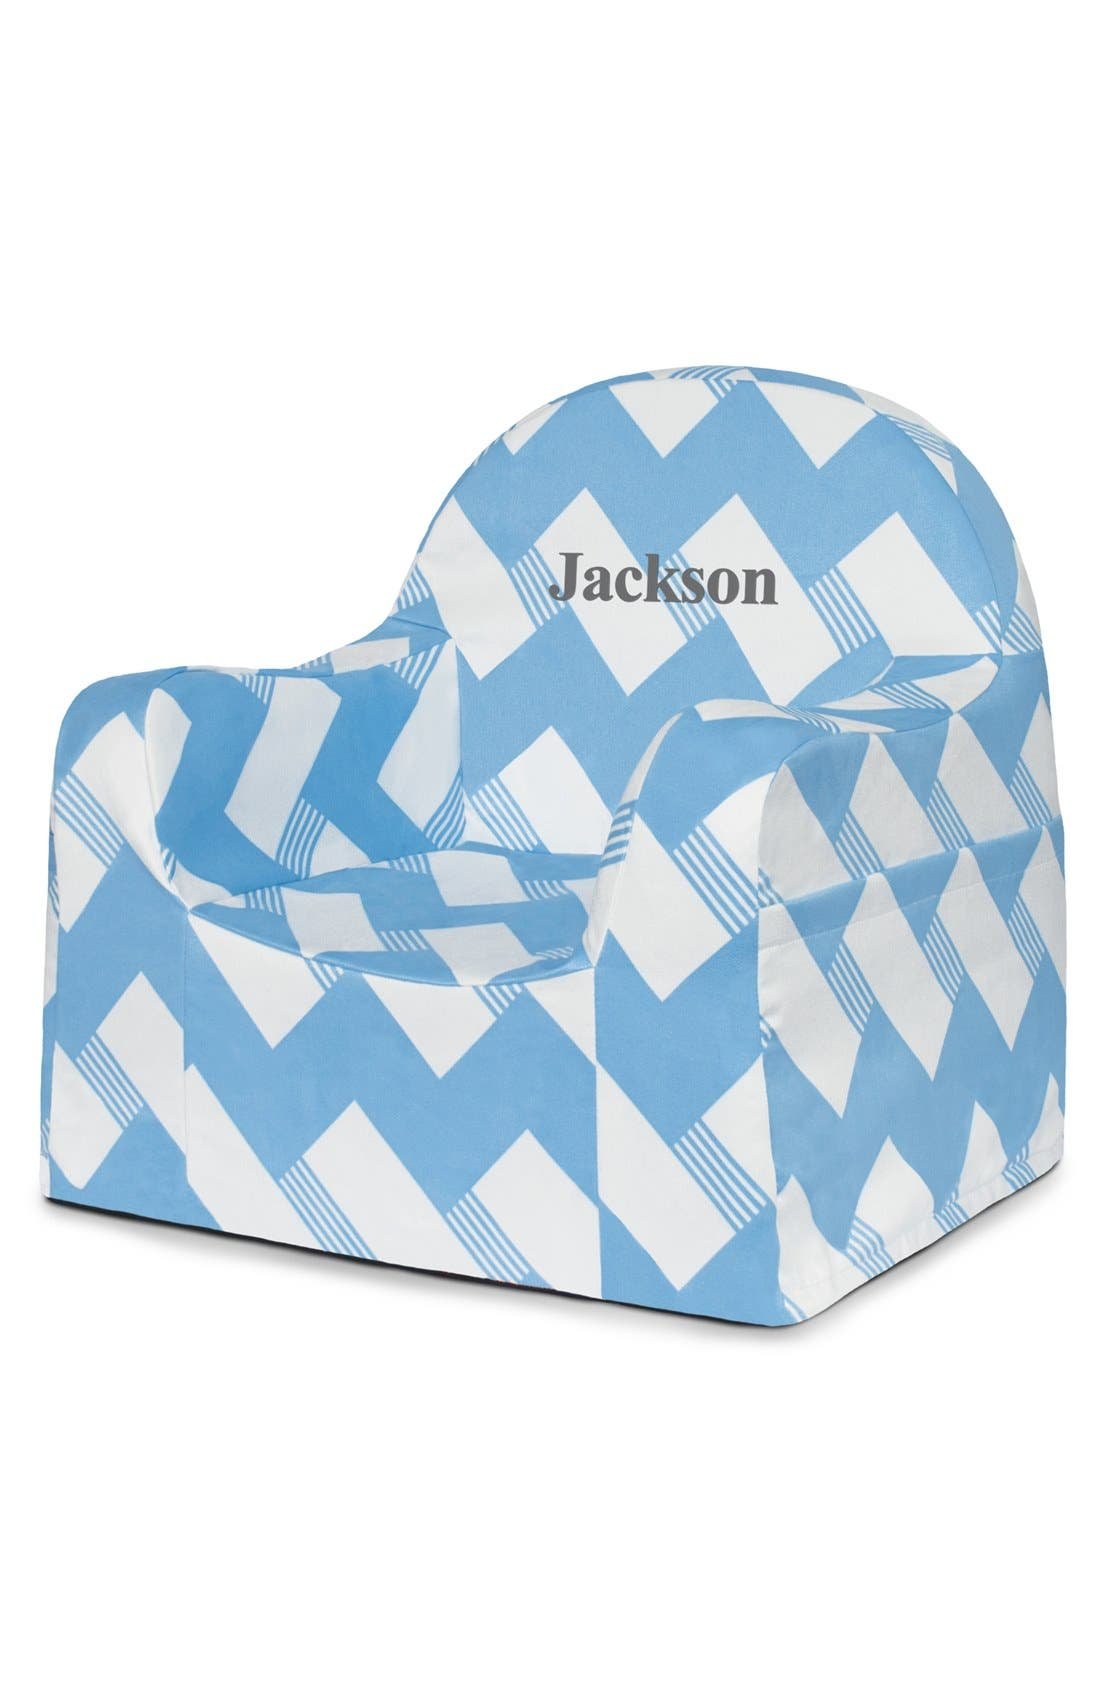 'Personalized Little Reader' Chair,                             Main thumbnail 1, color,                             Zigzag Blue